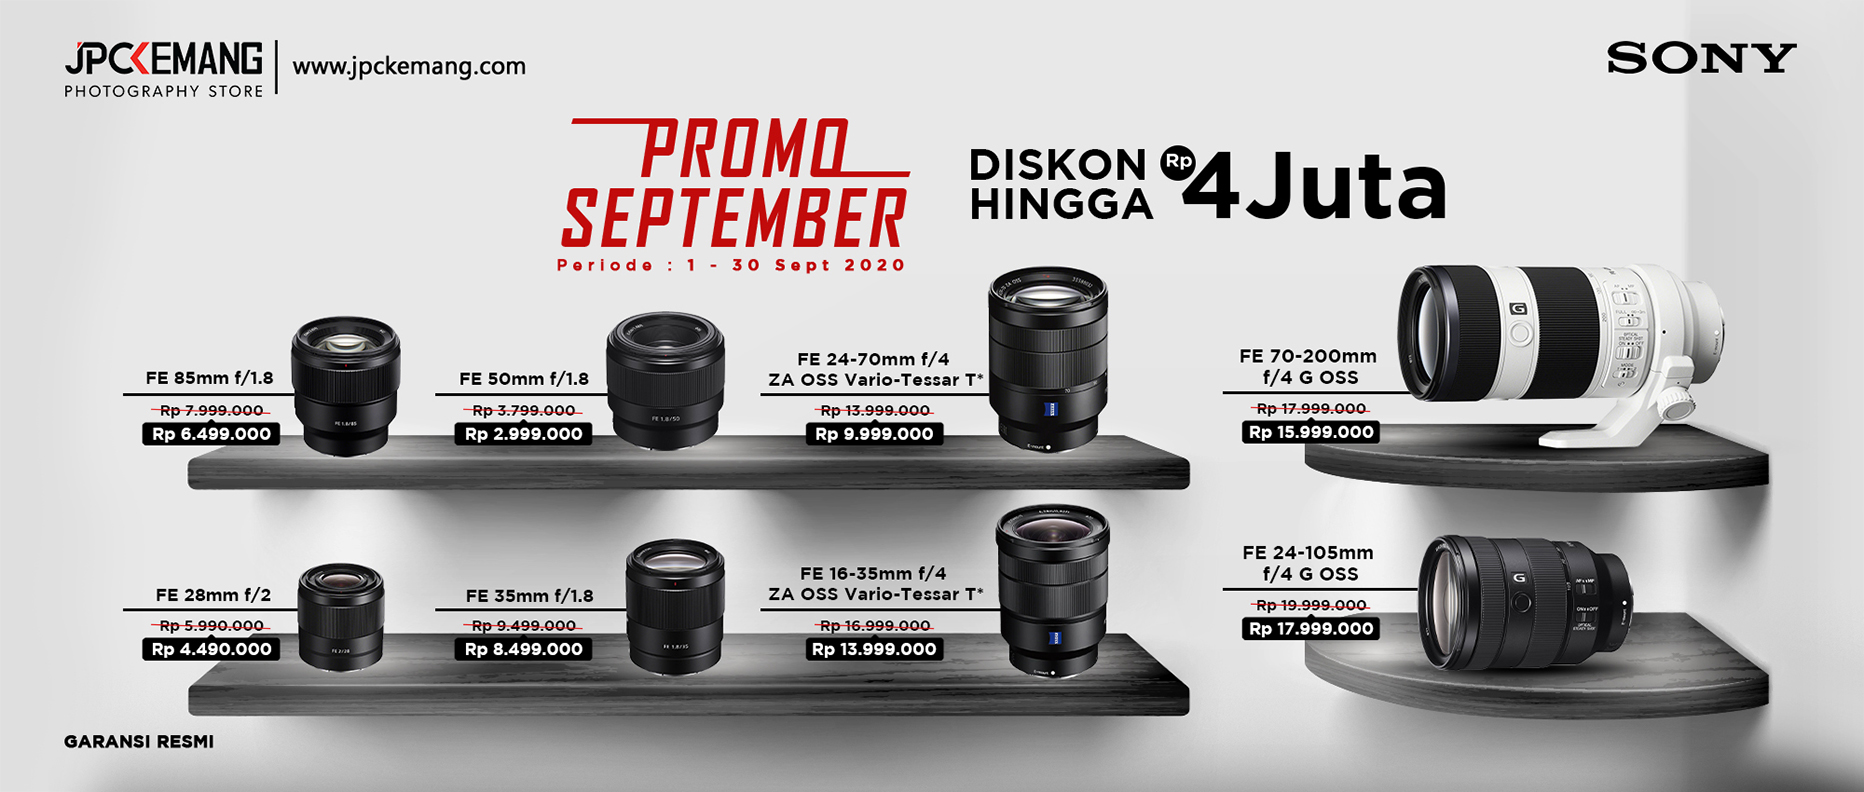 Diskon Lensa Sony September